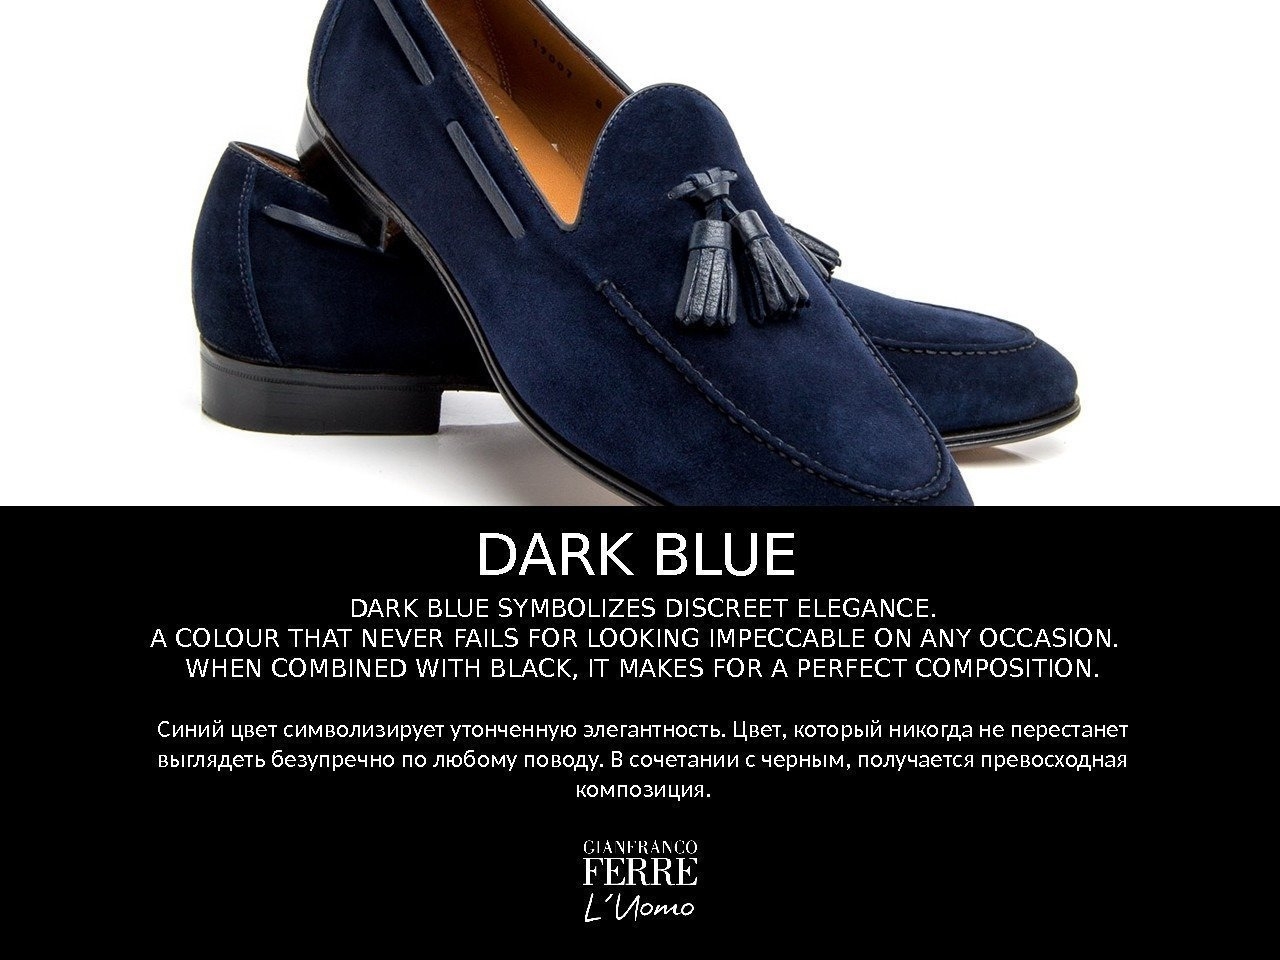 DARK BLUE SYMBOLIZES DISCREET ELEGANCE. A COLOUR THAT NEVER FAILS FOR LOOKING IMPECCABLE ON